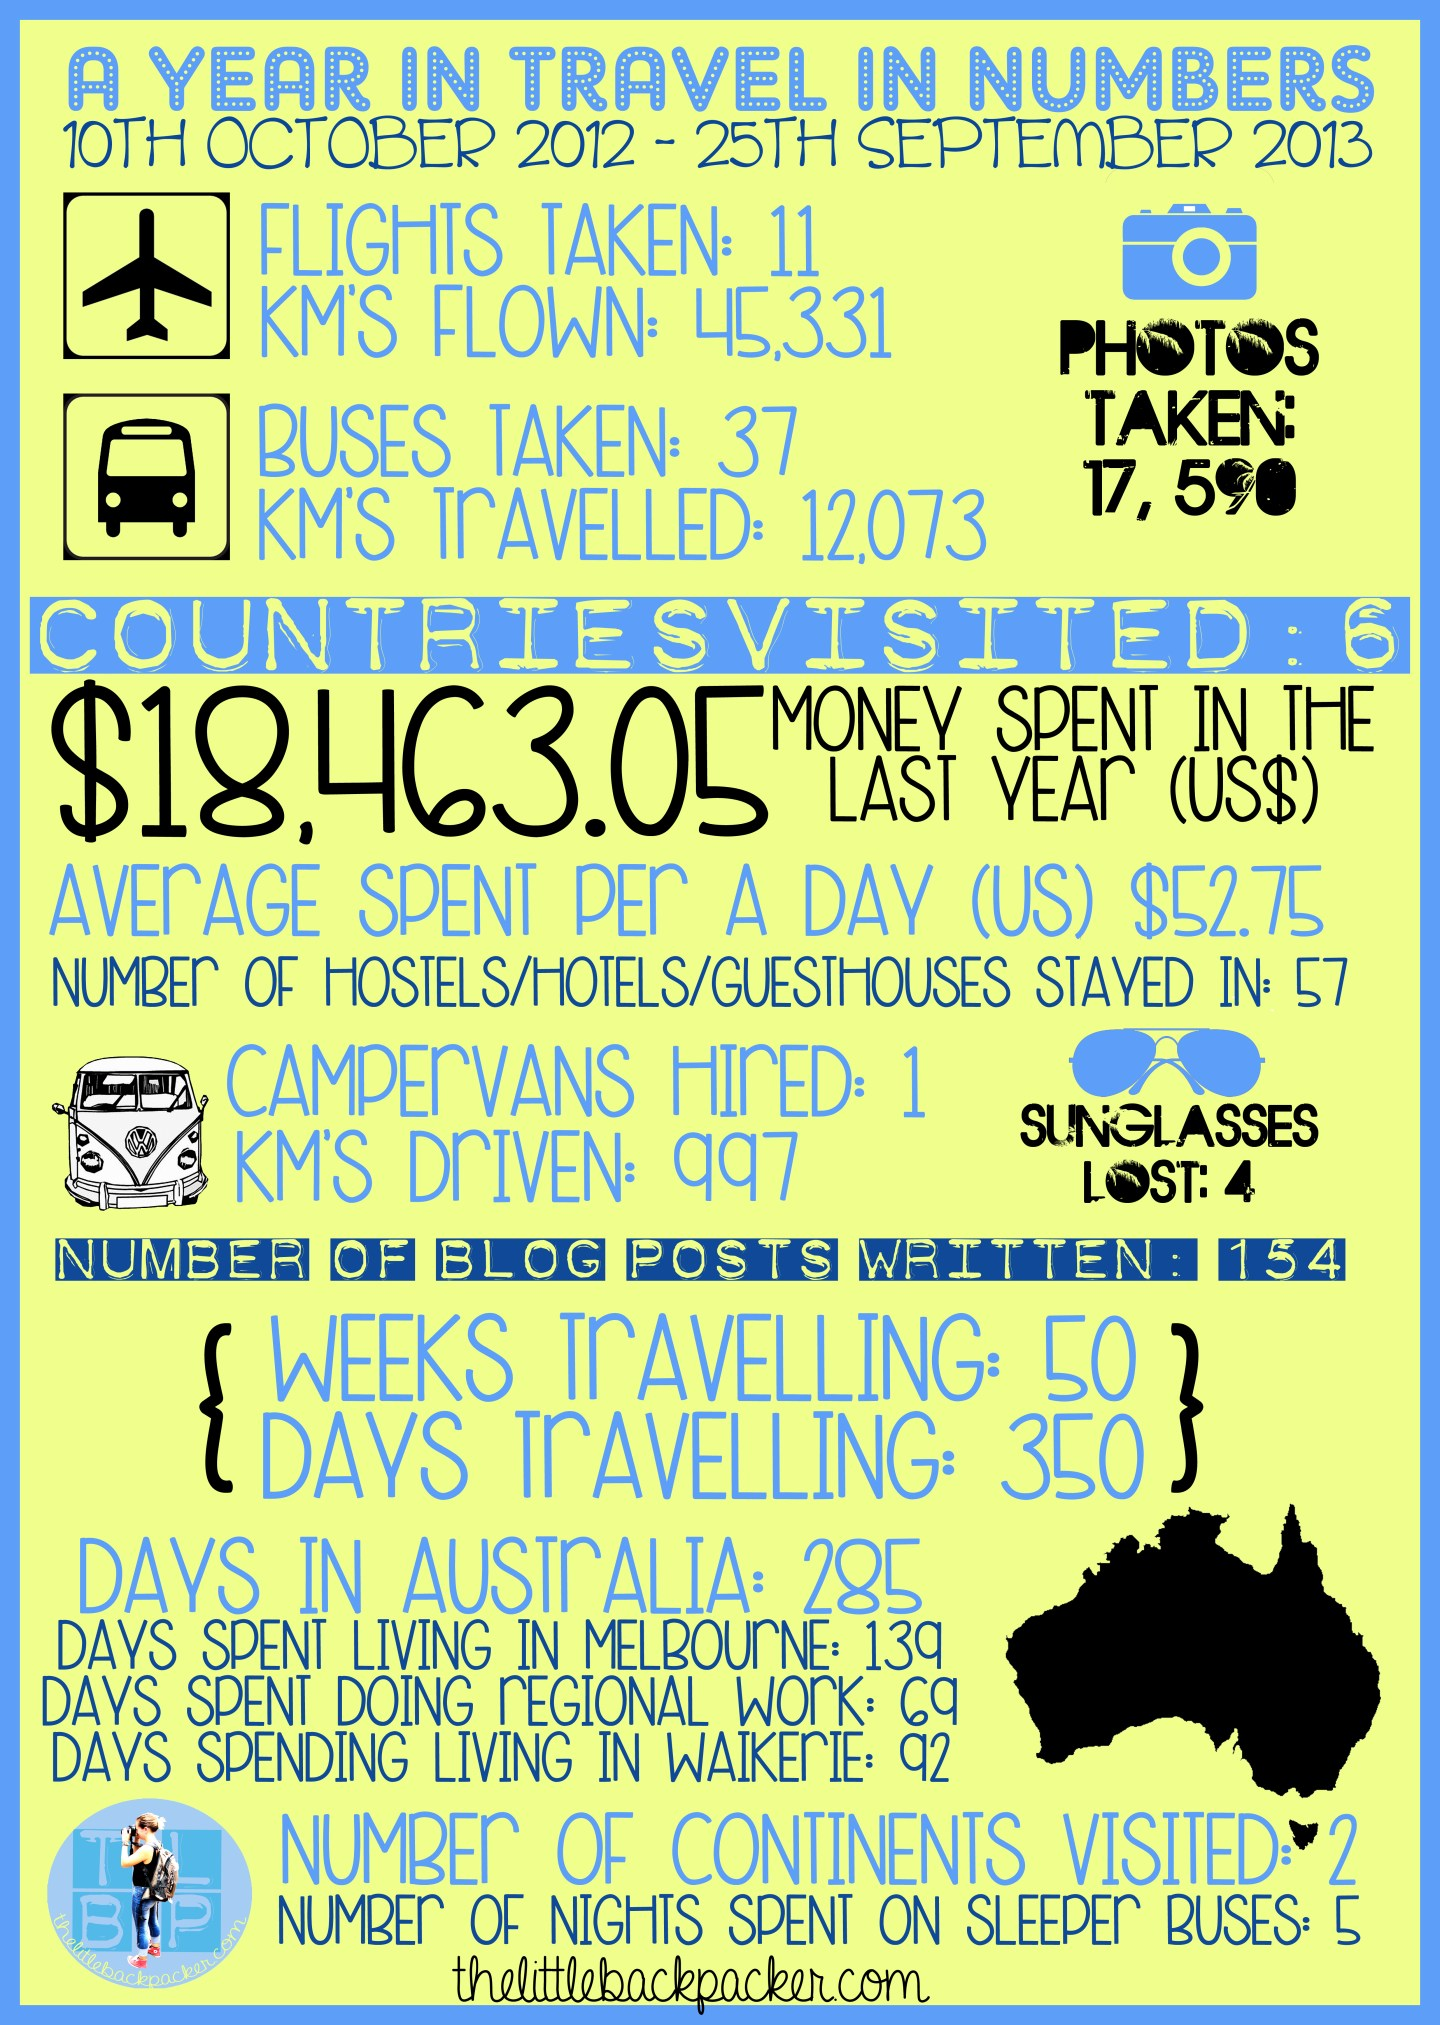 An Info-graphic of a Year In Travel